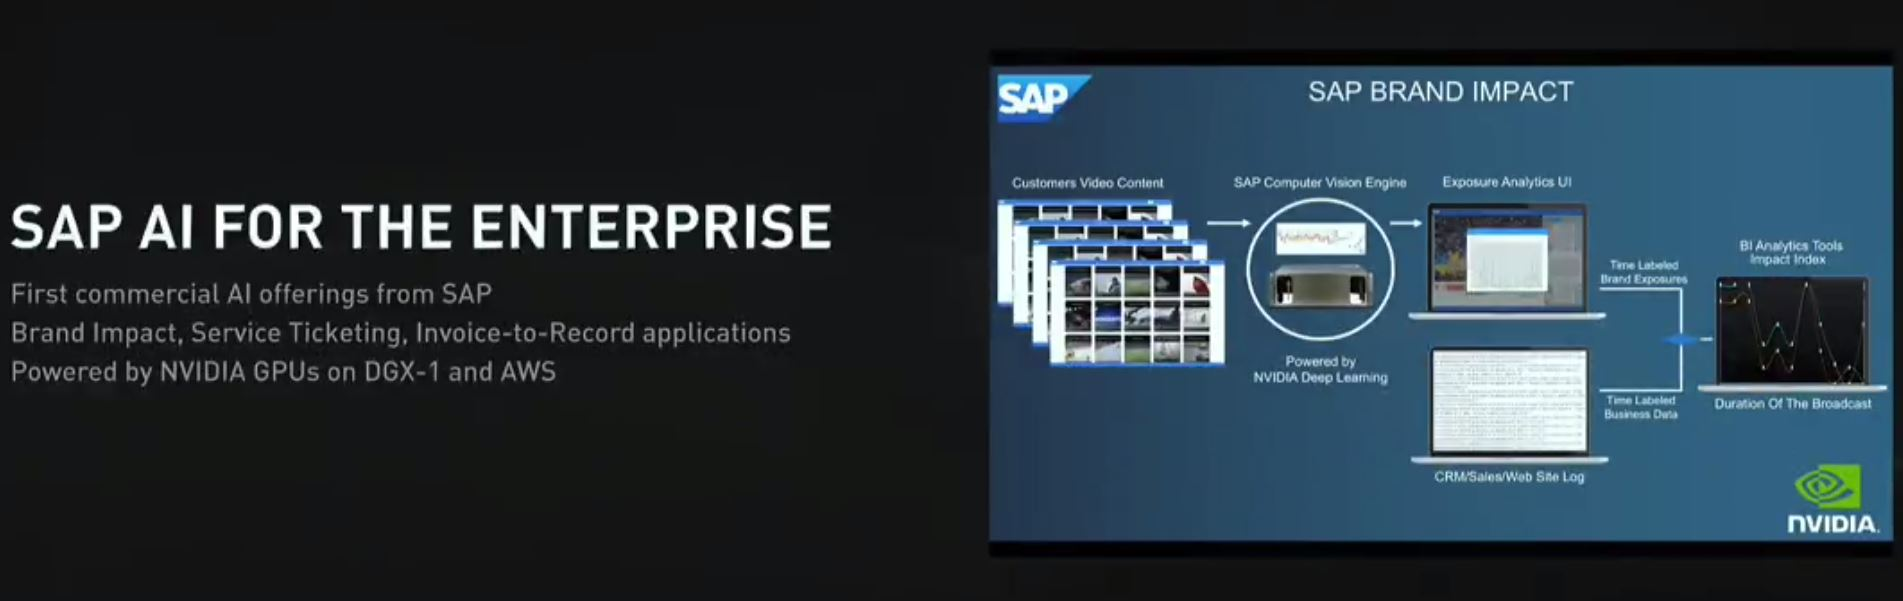 NVIDIA GTC 2017 SAP AI Brand Impact Scope